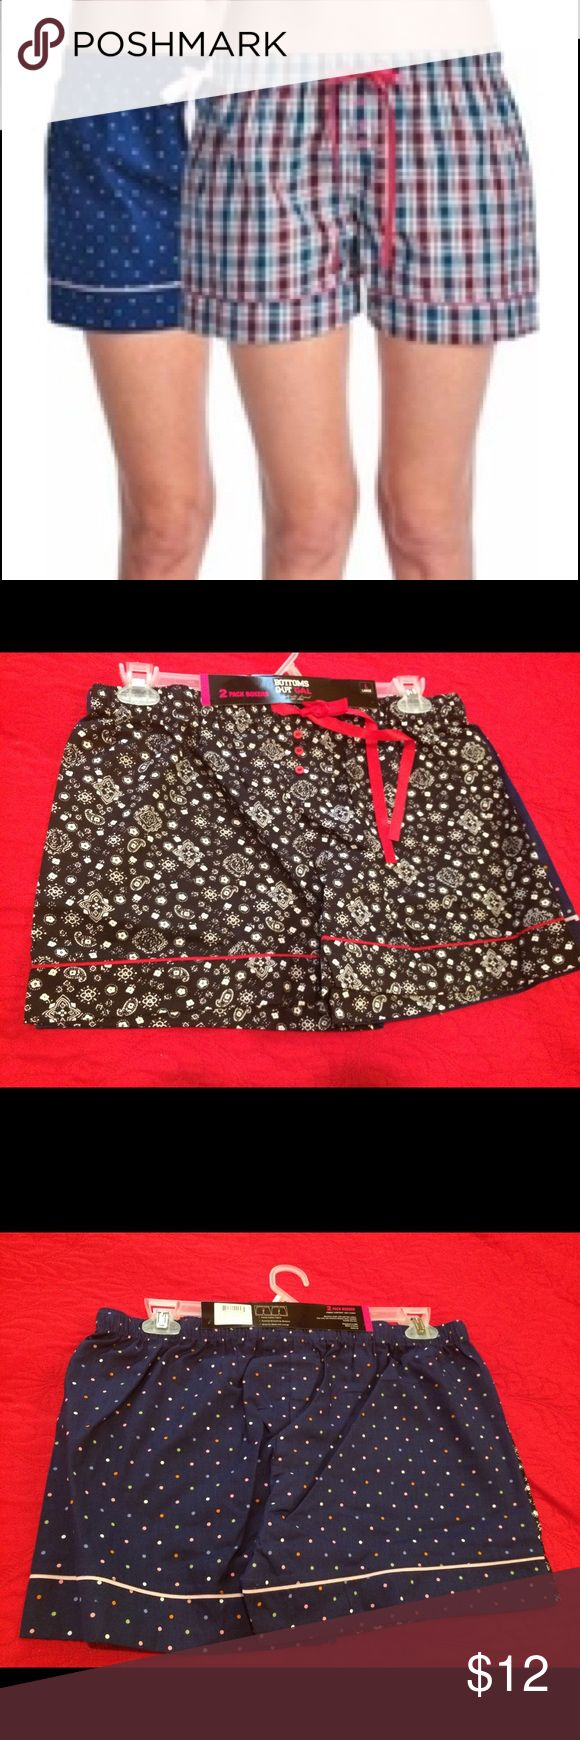 Bottoms out gal 2pk women Woven sleepwear boxers -2 women sleepwear boxers - comfy cotton fabric  - new and in good condition  - size large Shorts